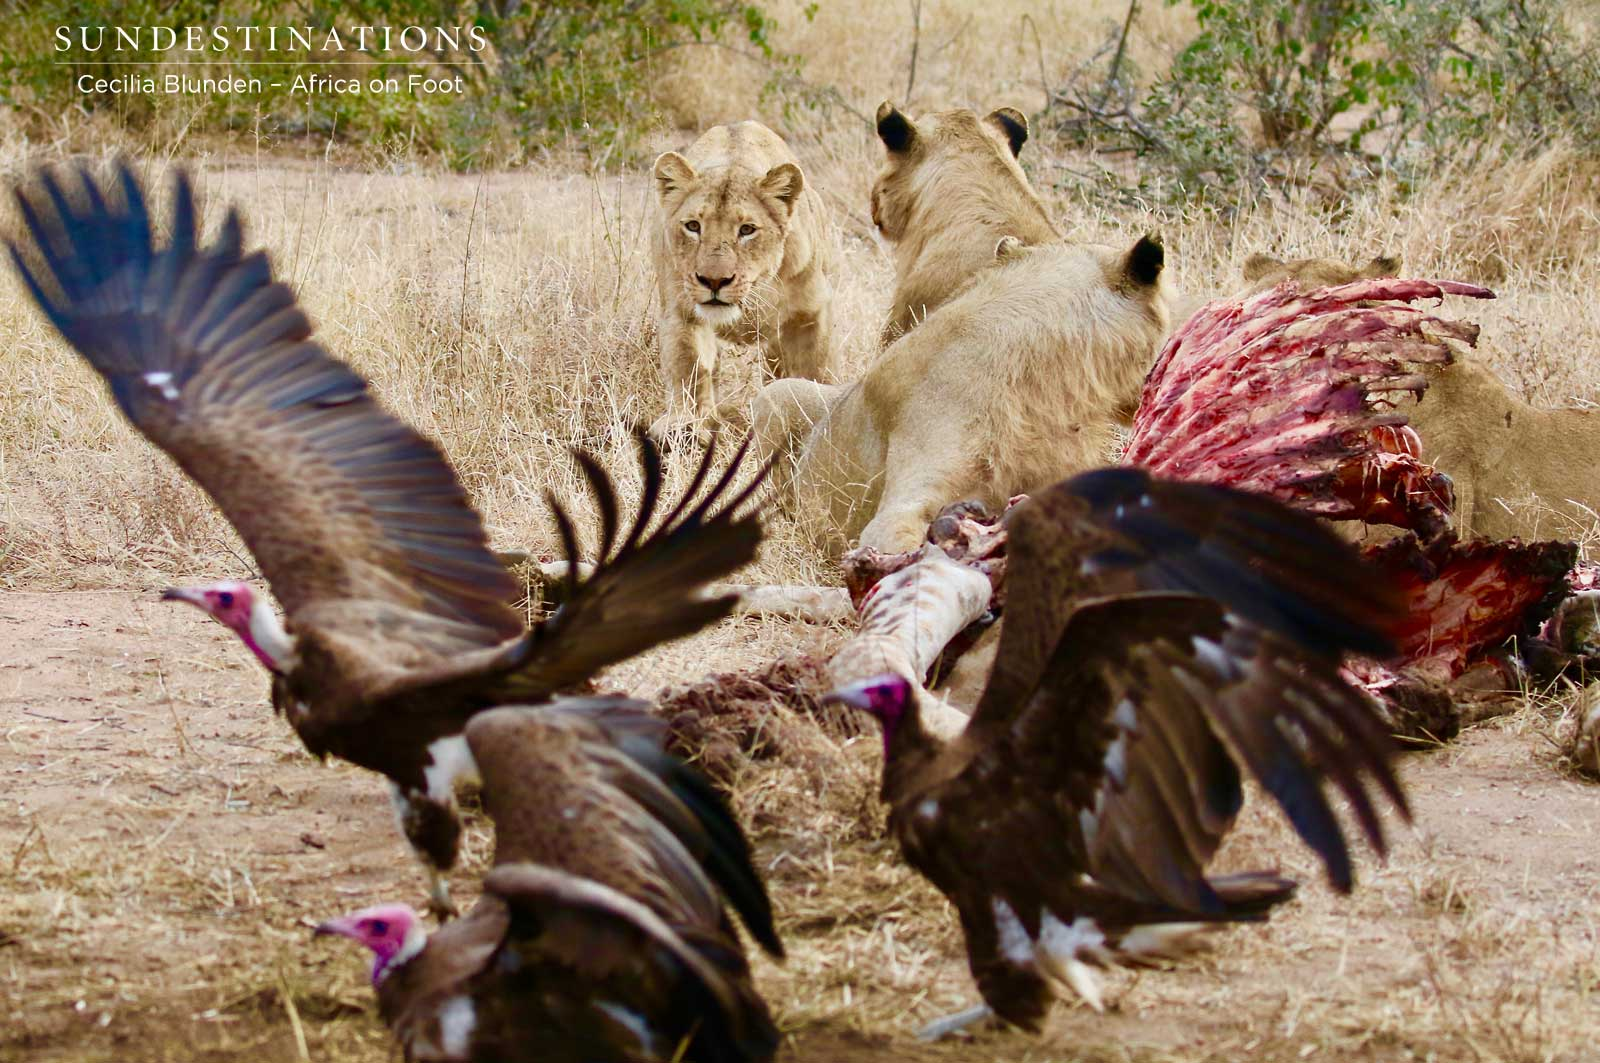 Skittish Lions Feast on Giraffe Kill for Days